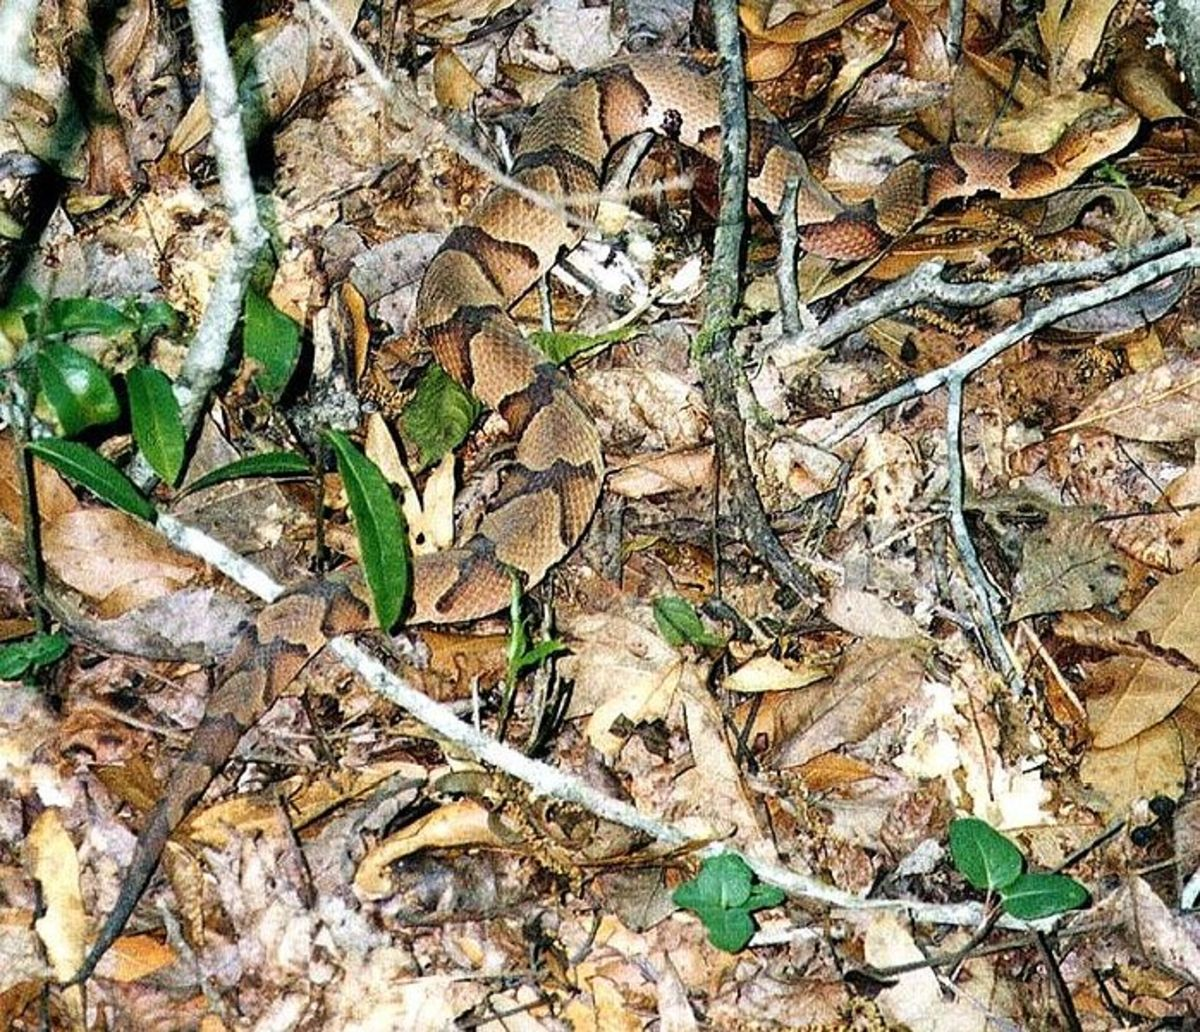 Southern Copperhead in it's natural habitat displaying it's perfect camo... Public Domain.